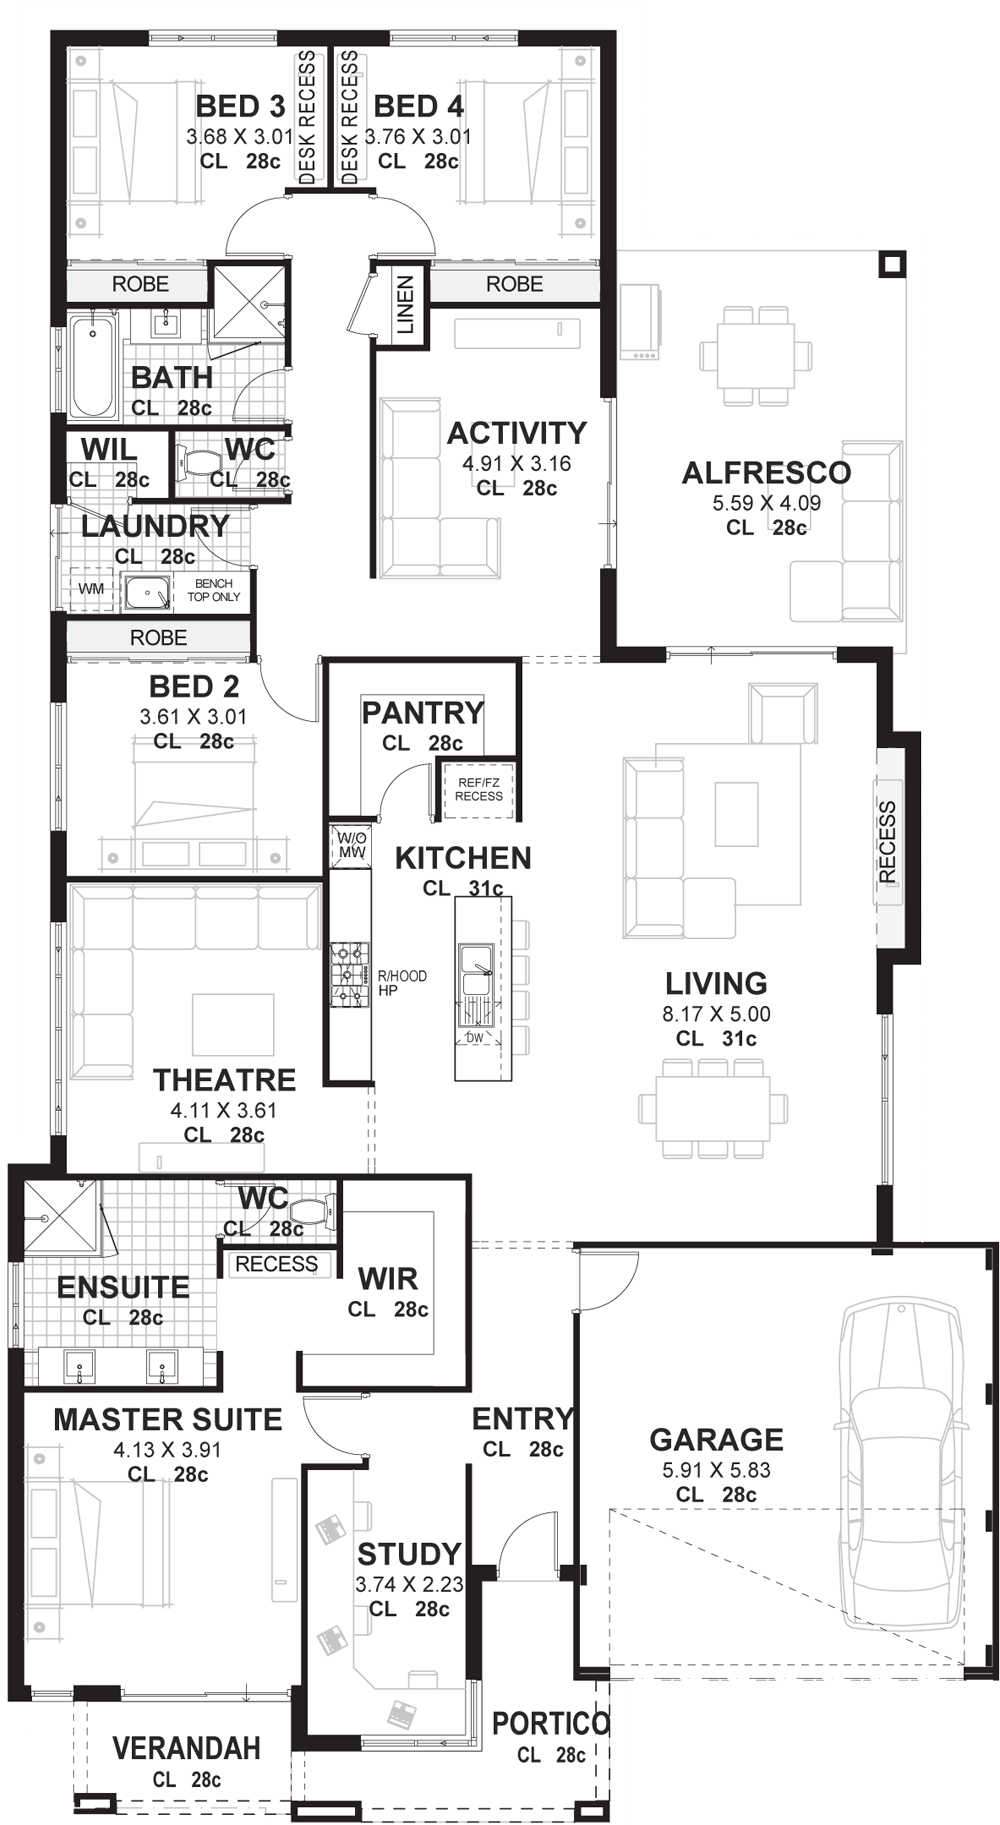 4 bedroom house plans home perth vision one homes plans bedroom rh pinterest com